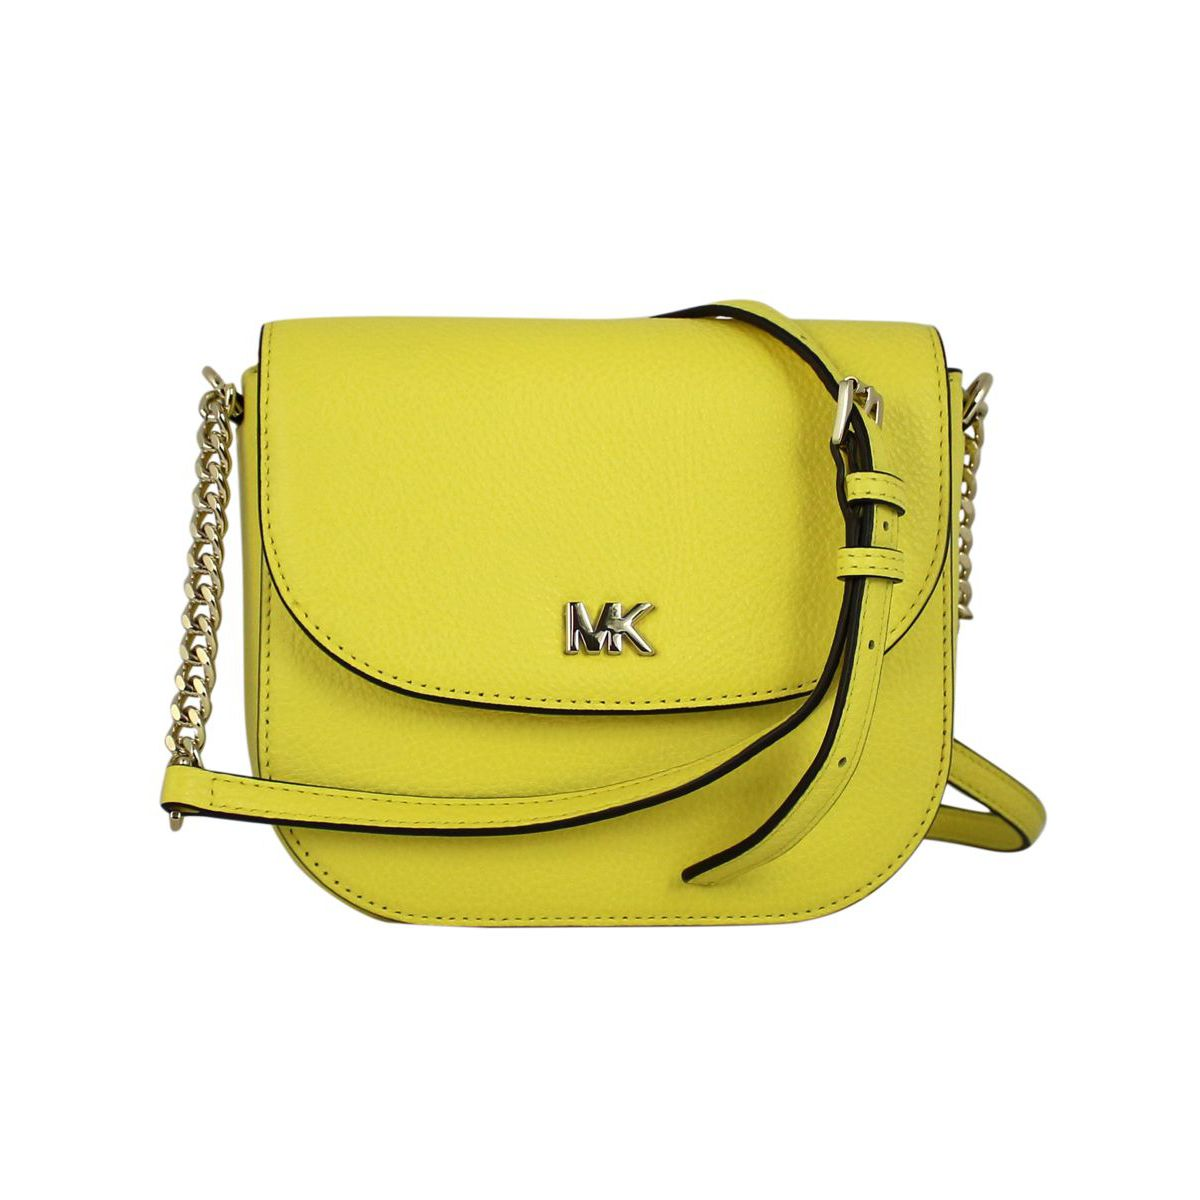 Medium Ginny shoulder bag Yellow Michael Kors